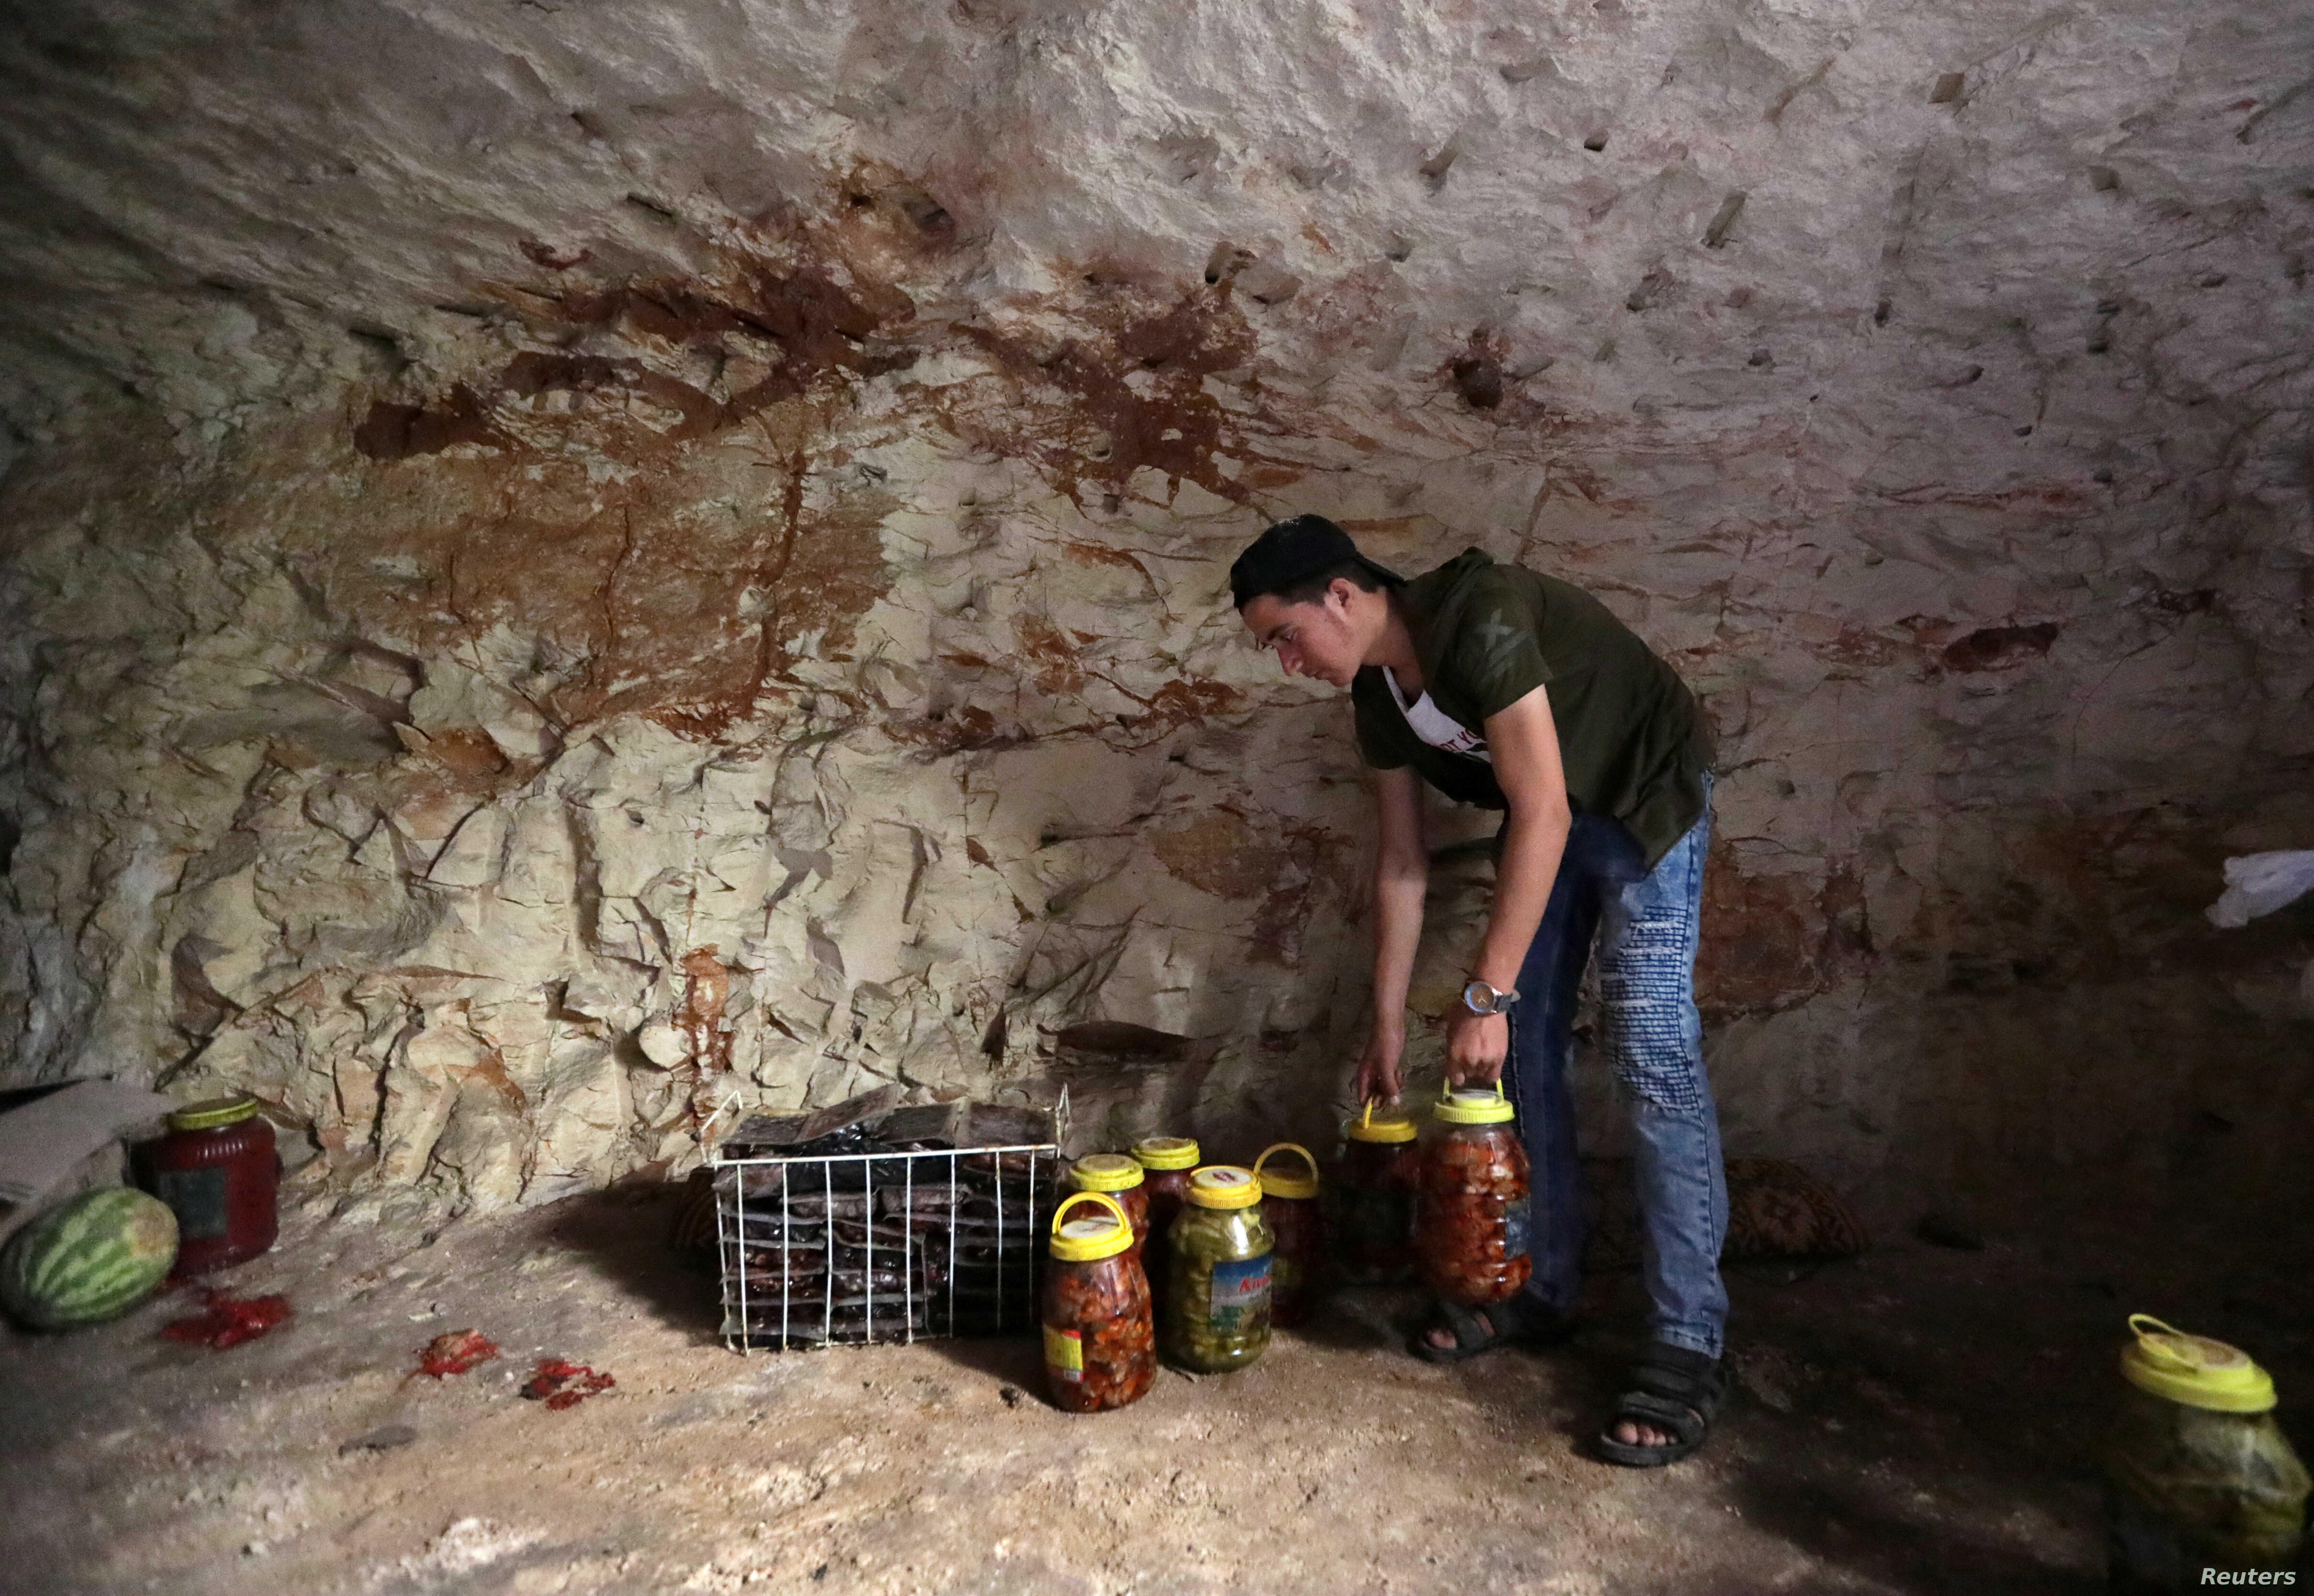 A man holds pickled vegetables in an underground cave in Idlib, Syria, Sept. 3, 2018. The city is bracing for an attack by Syrian forces.